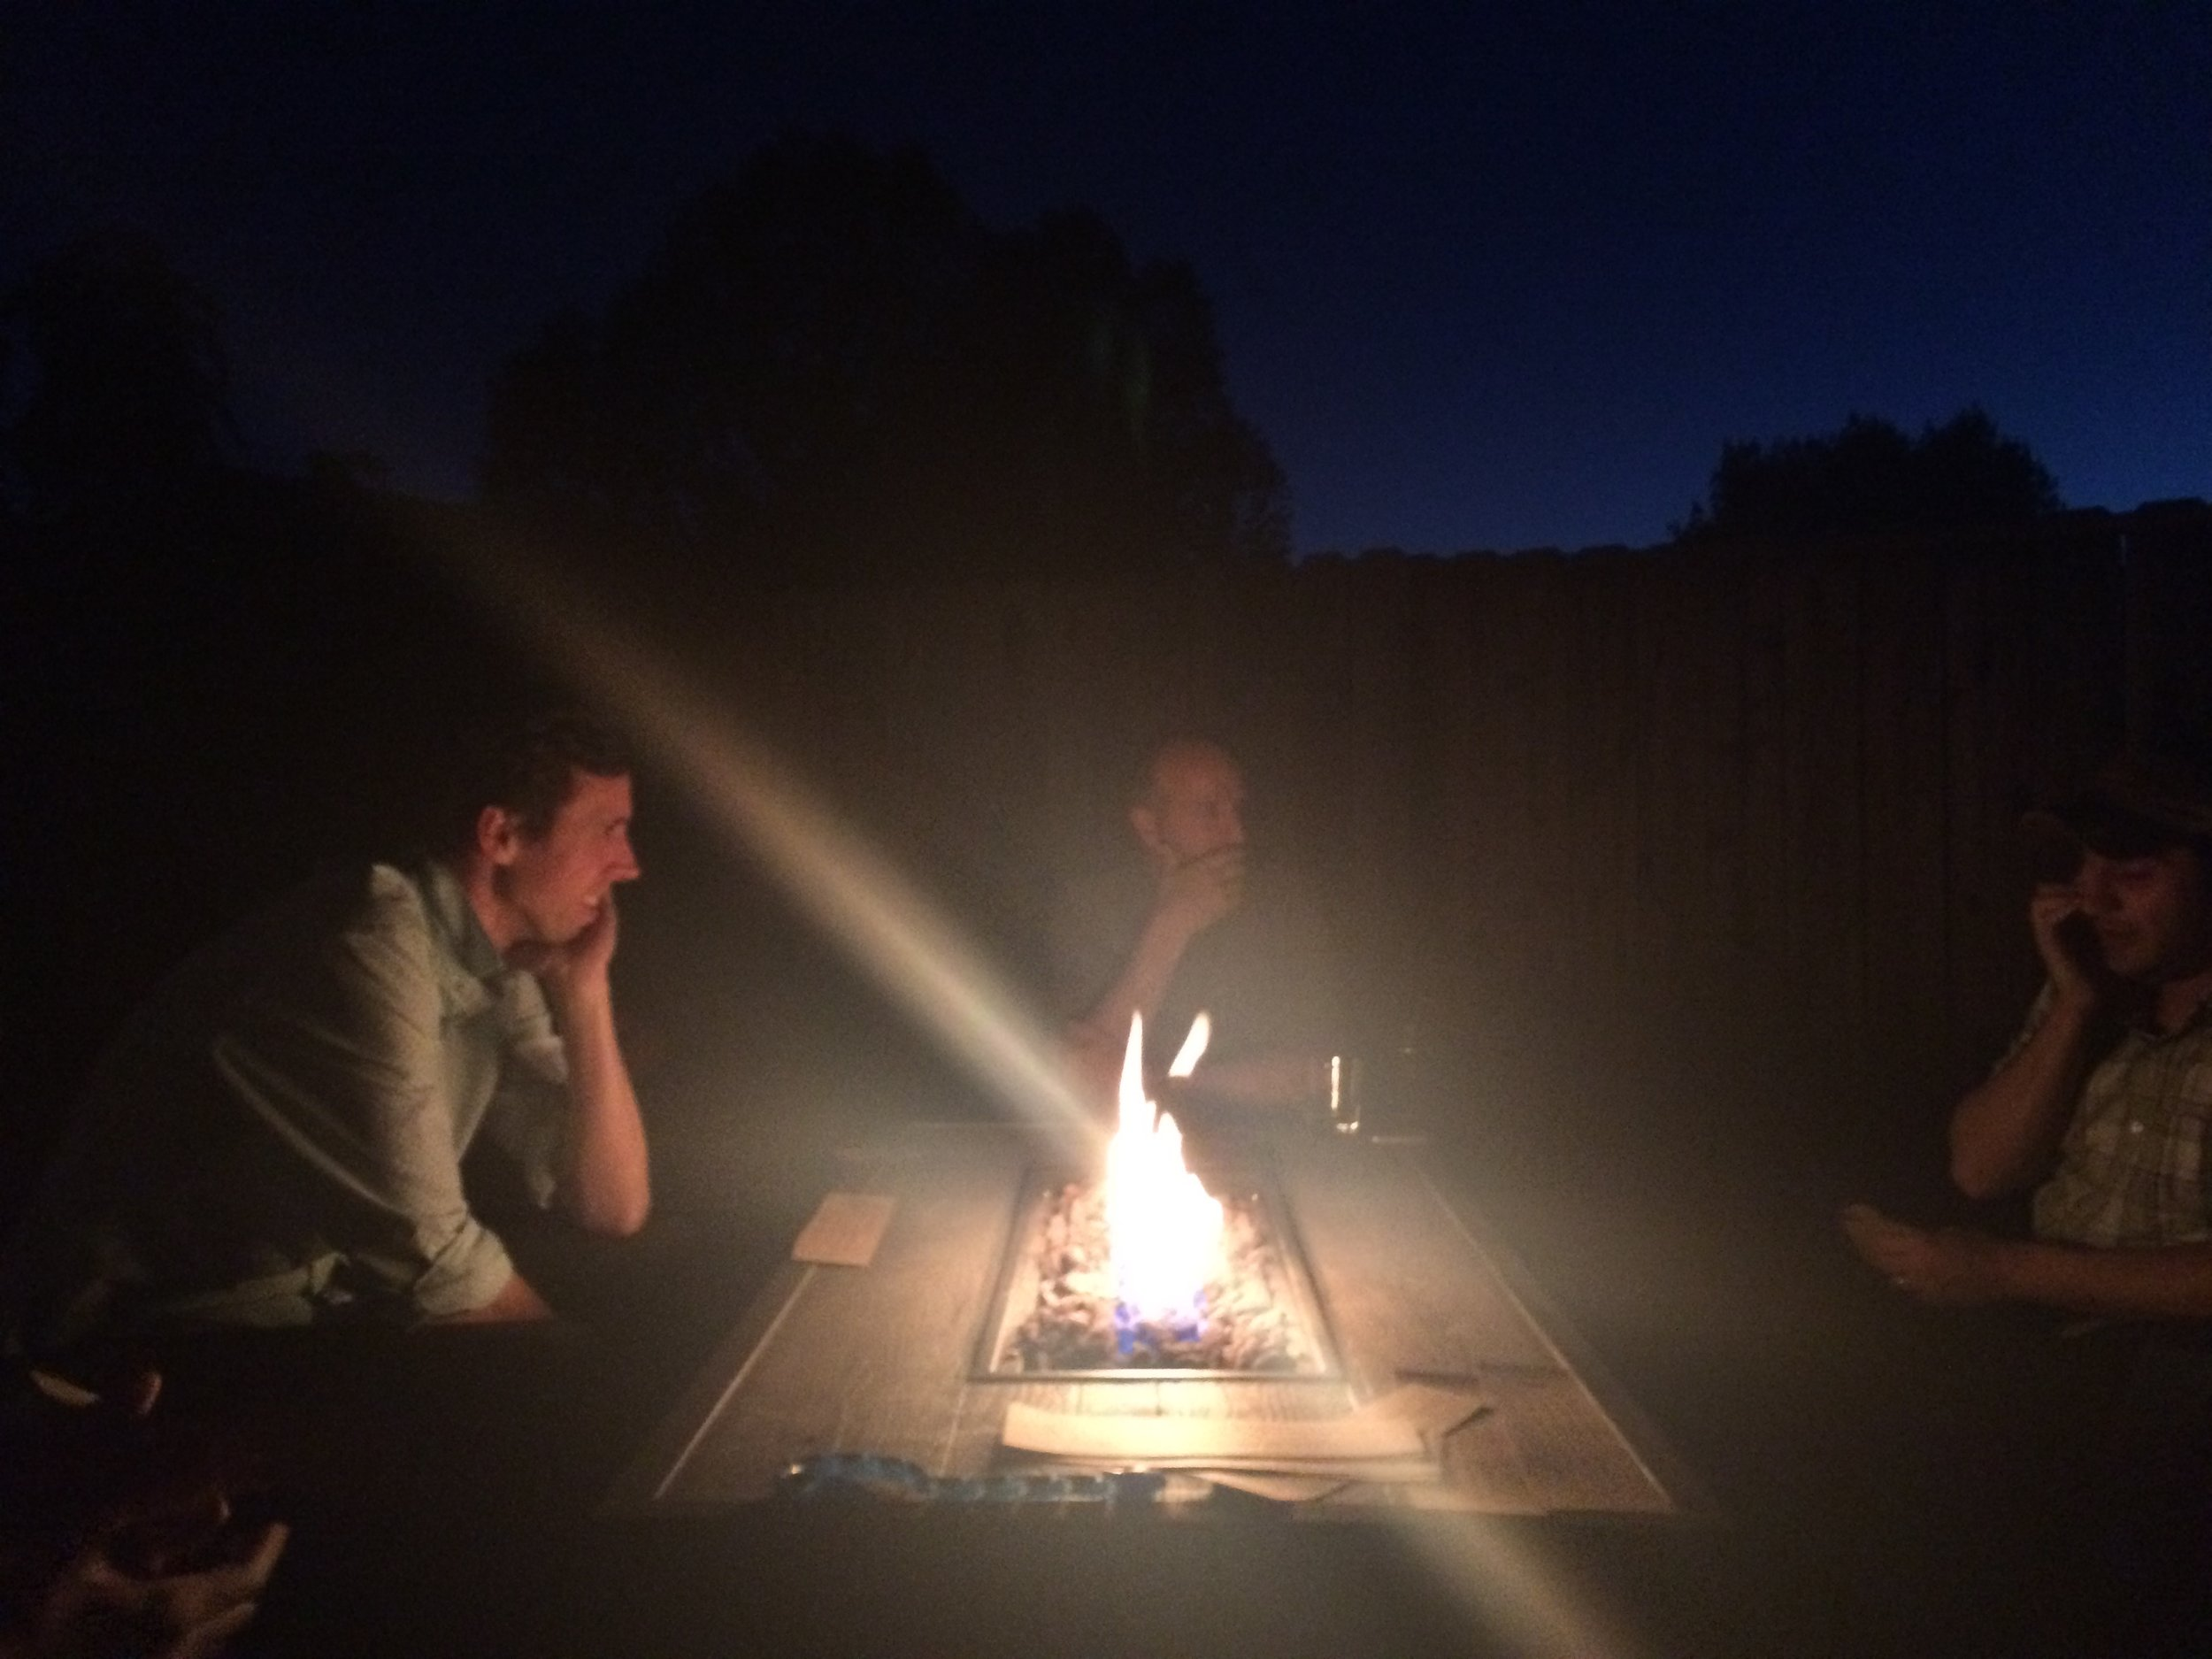 Fire, whiskey, and guys sharing their feelings. #mensconnect  Many thanks to Steve for hosting and creating such a great space!   Invitation:  Join us at the next men's monthly connection point, June 15th, 8pm at the Arnett's